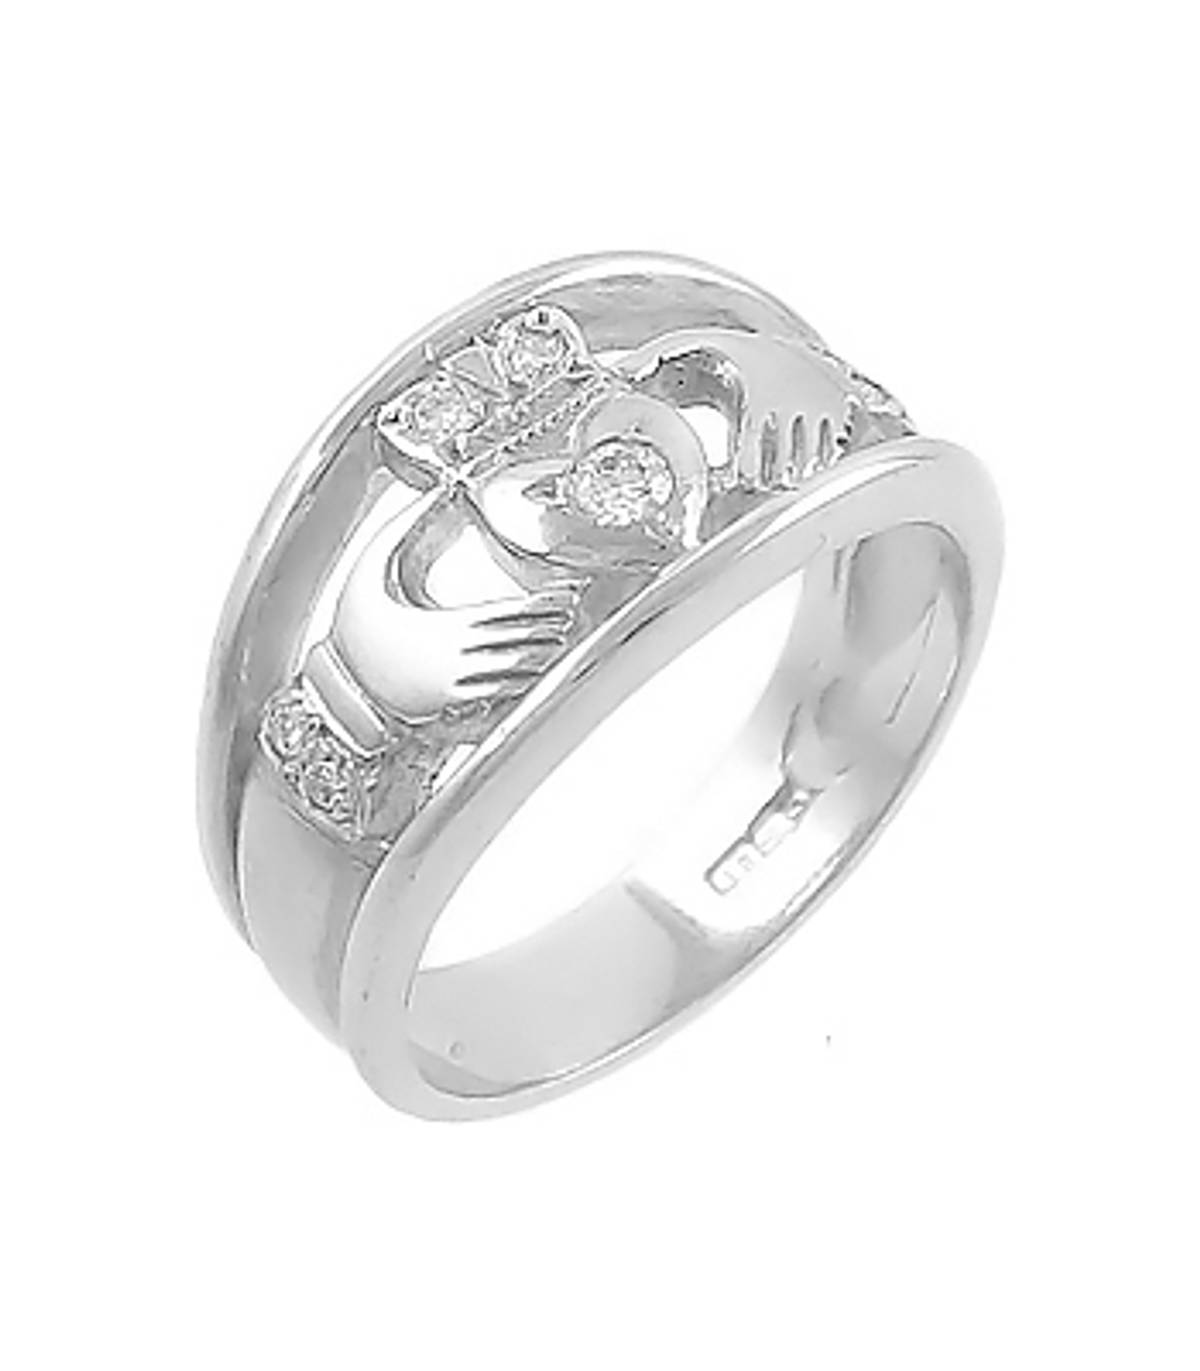 14 carat white gold 0.11cts diamonds claddagh engagement ring